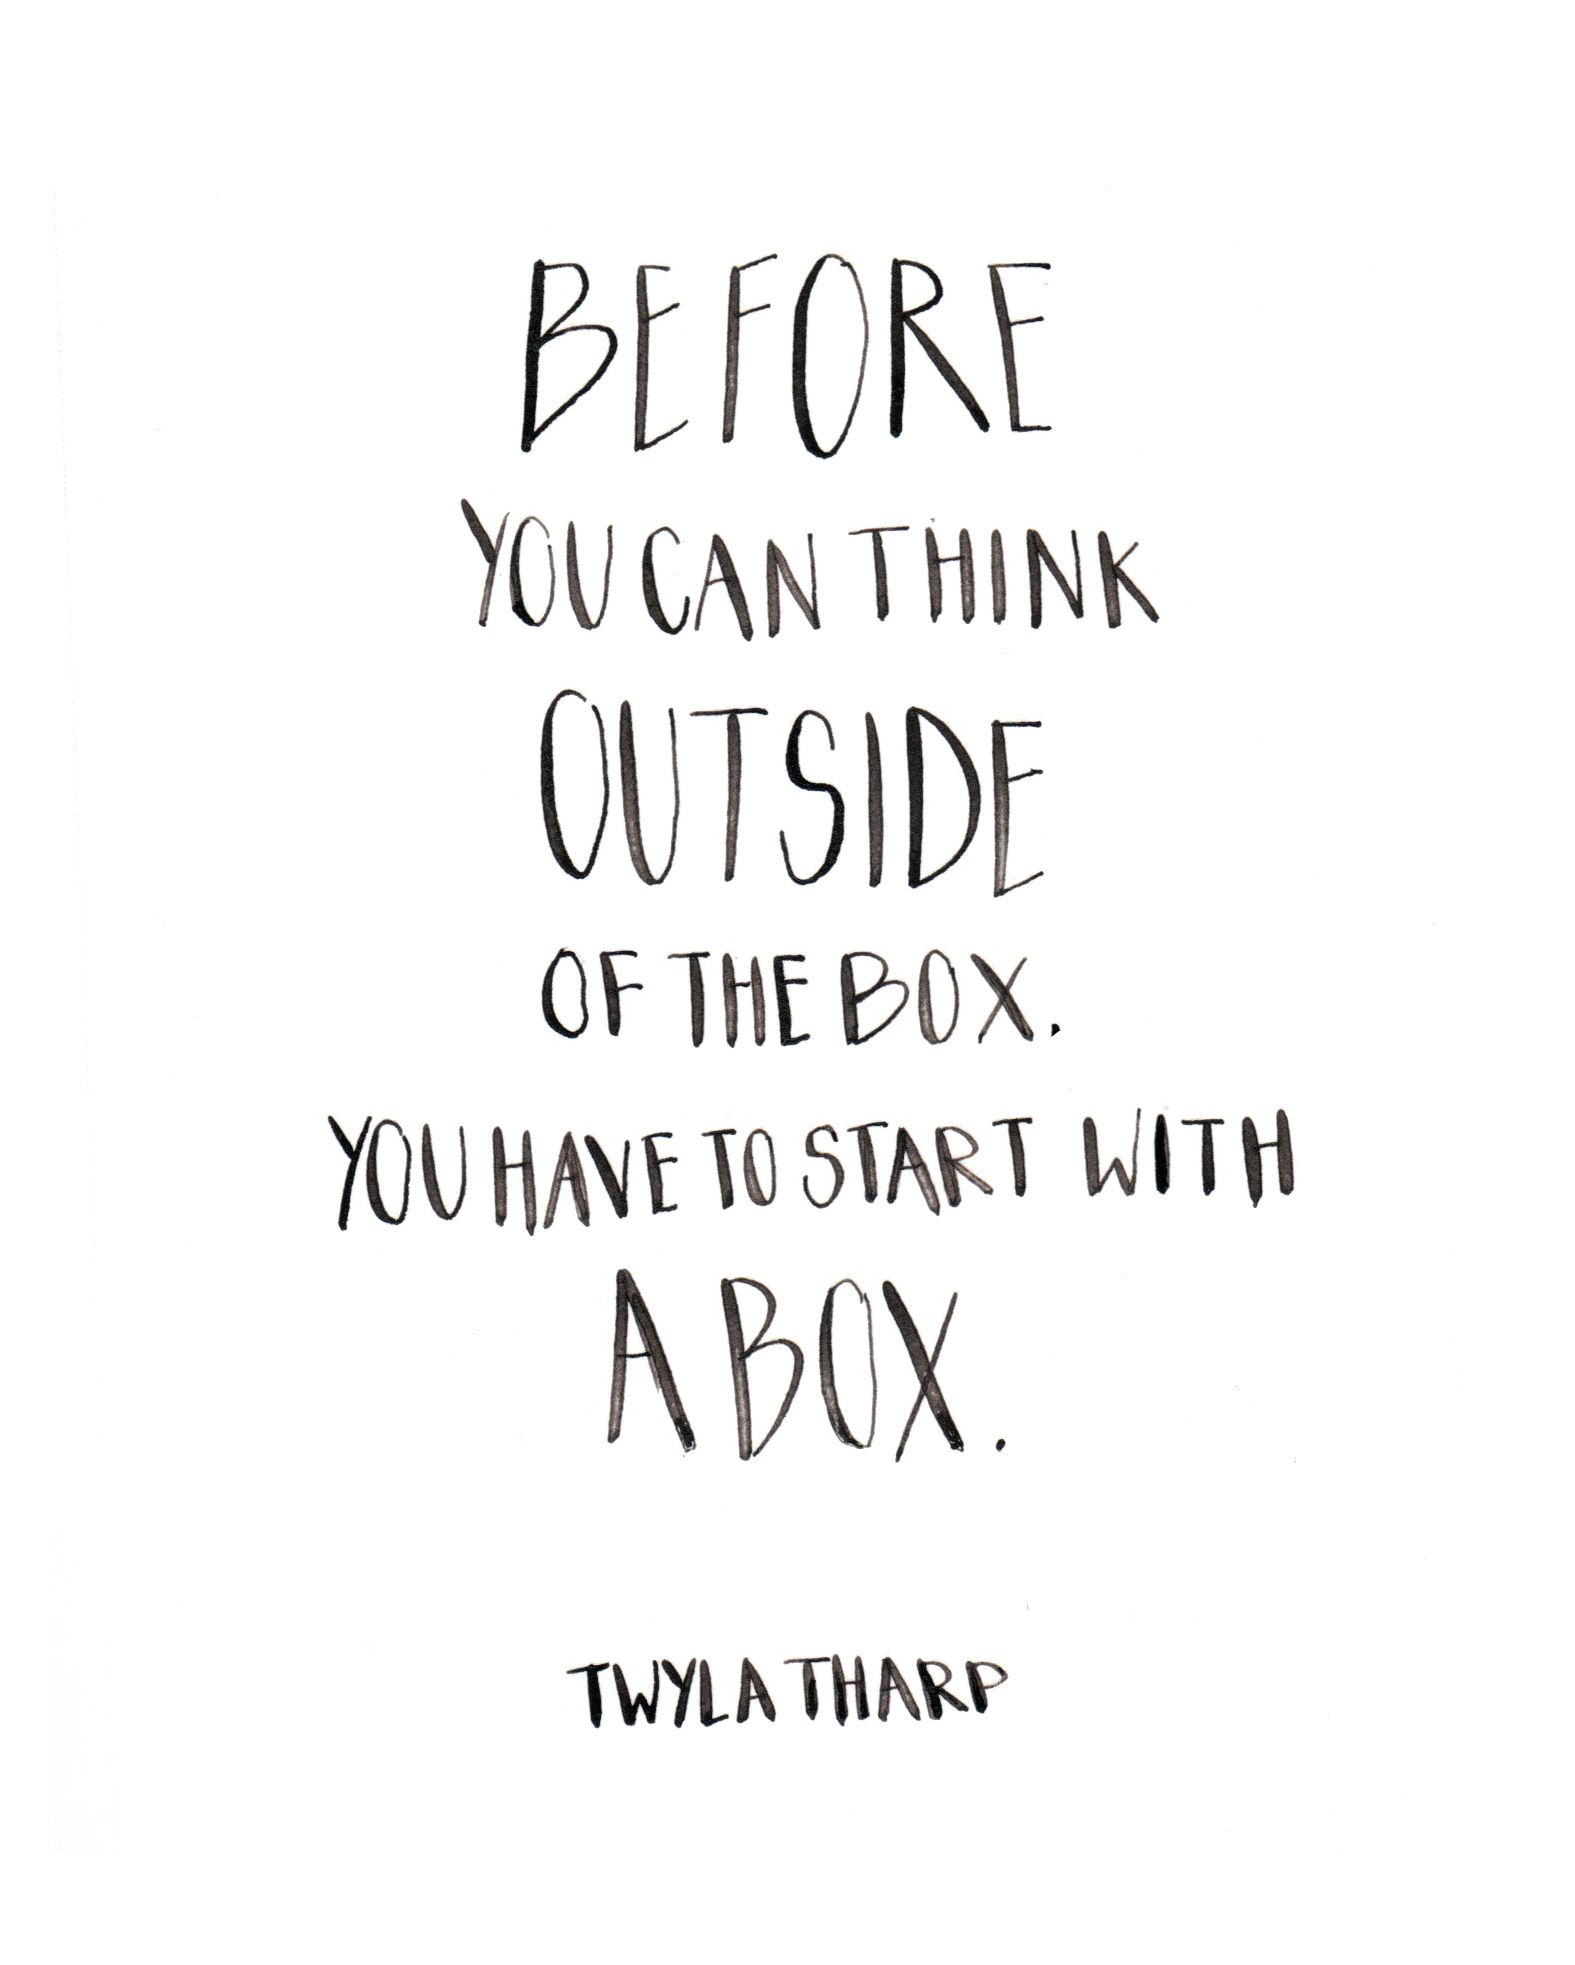 Before you can think outside of the box, you have to start